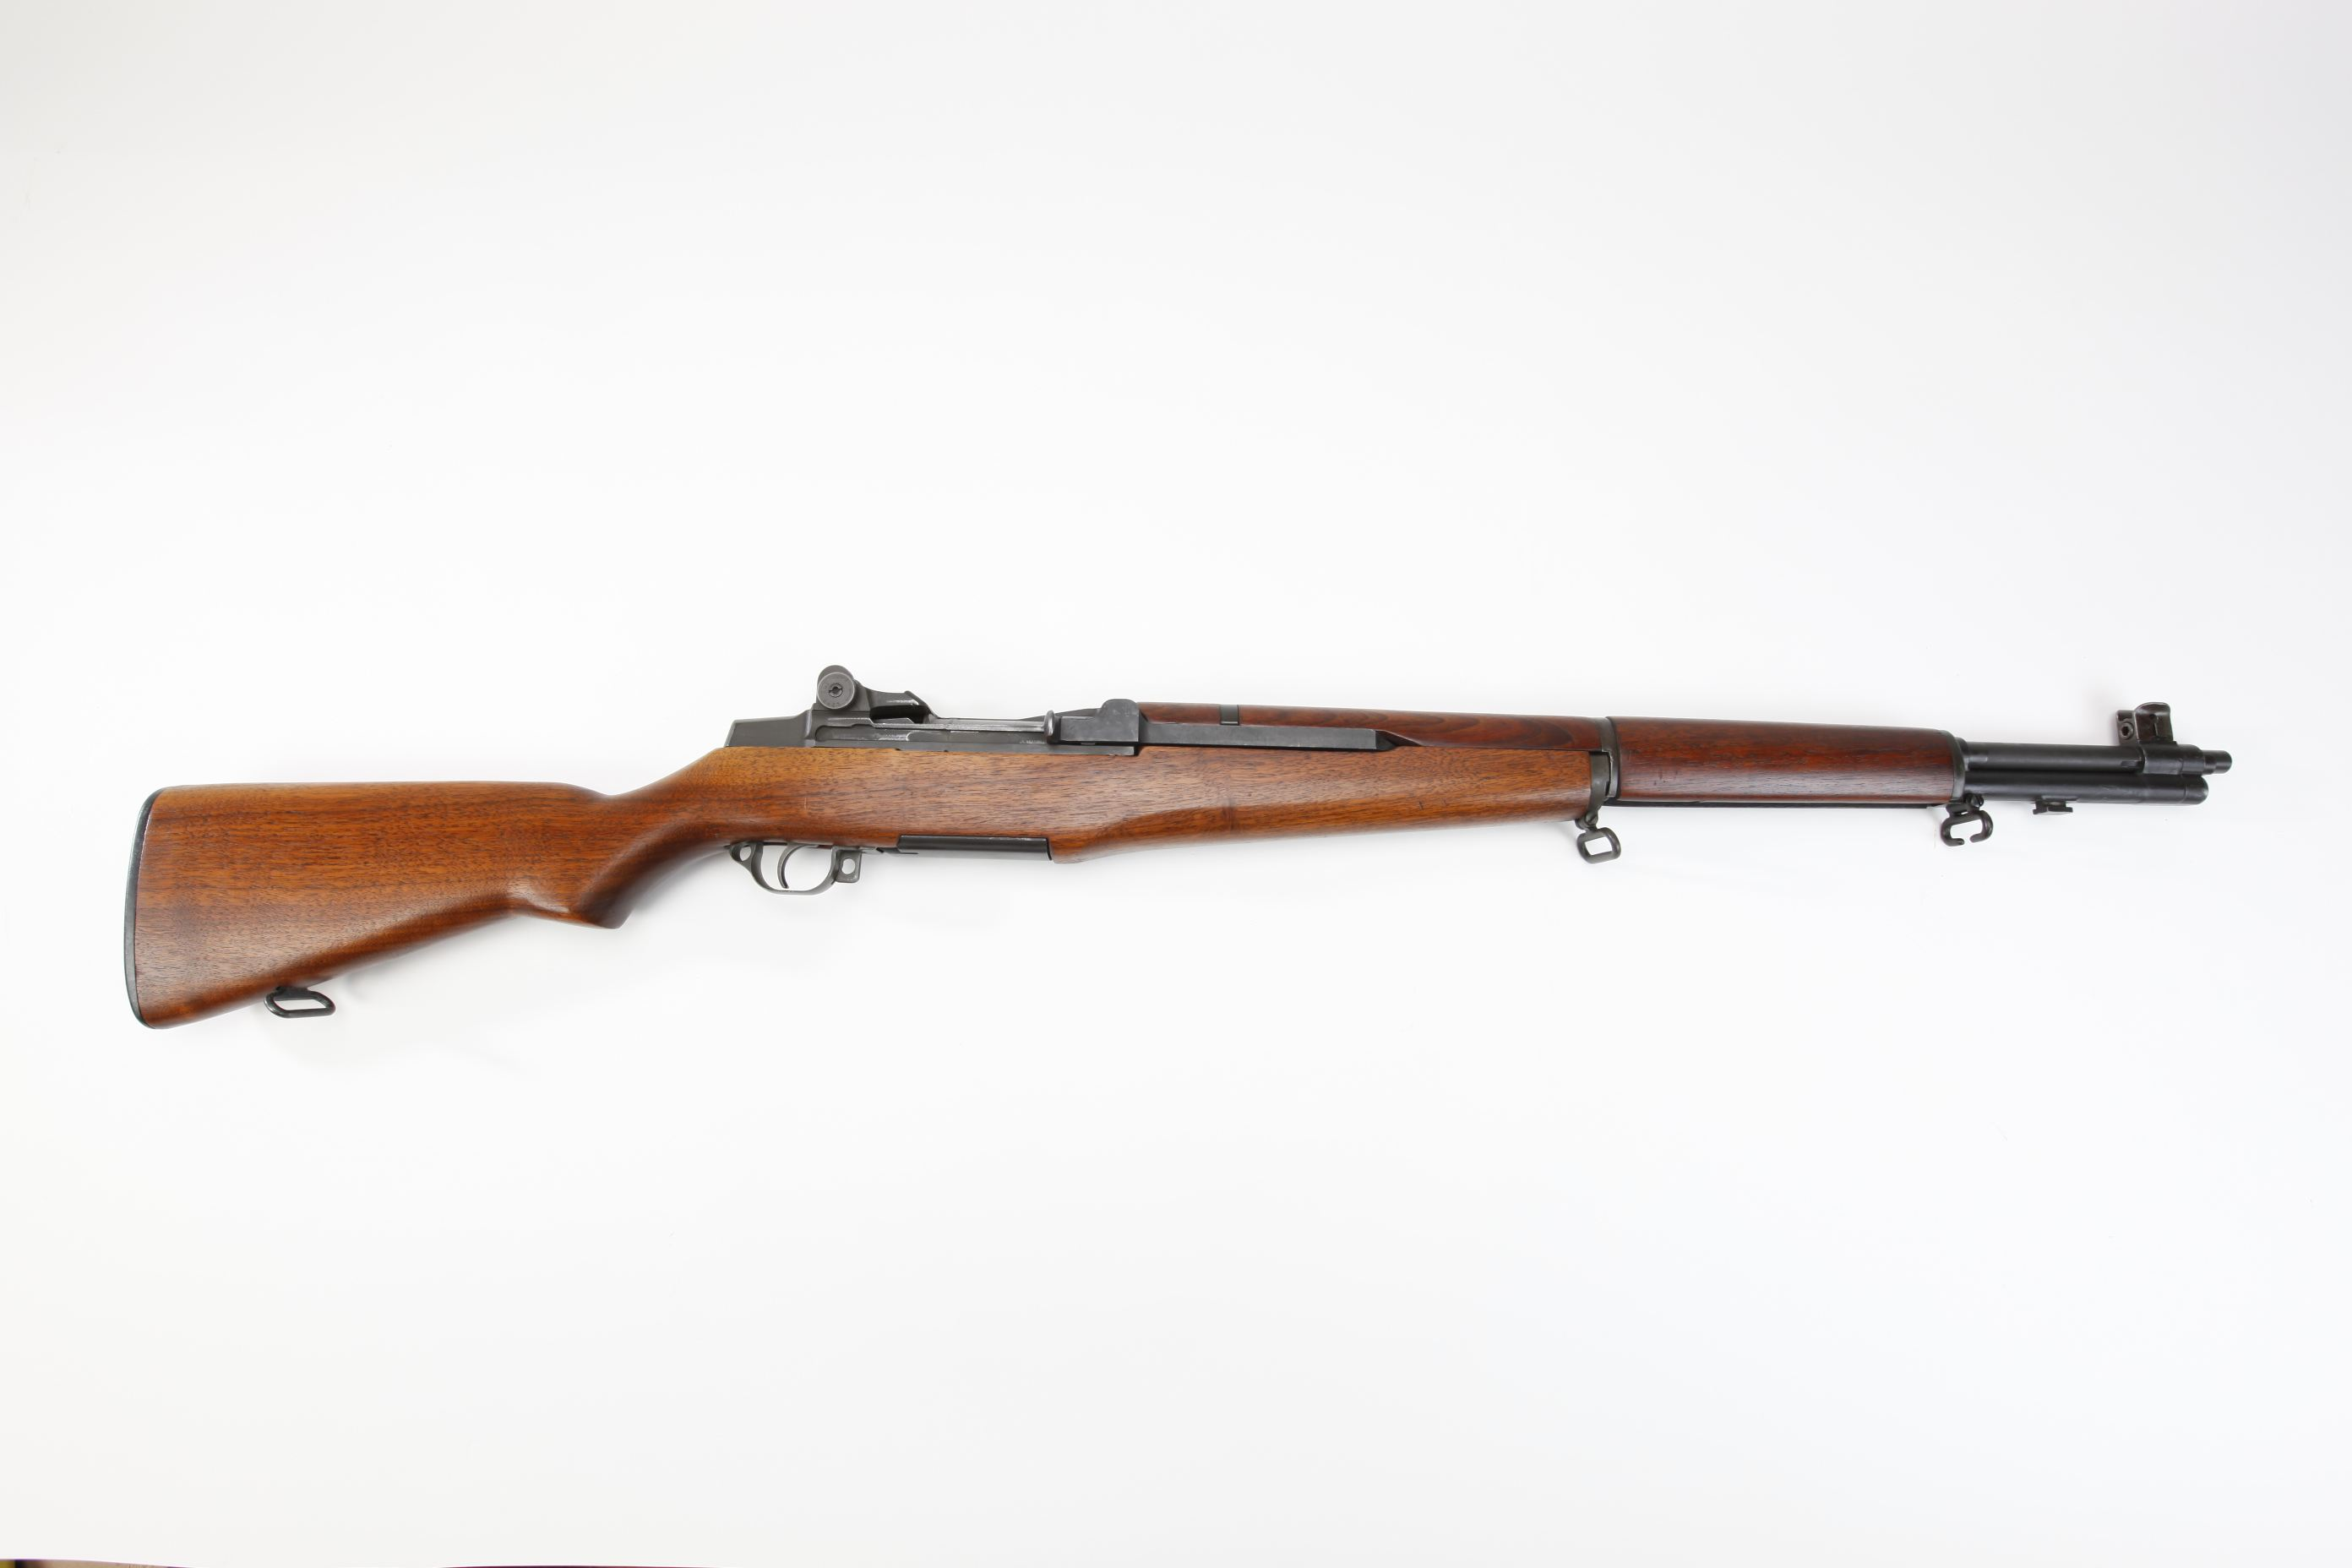 U.S. Harrington & Richardson M1 Garand Semi Automatic Rifle